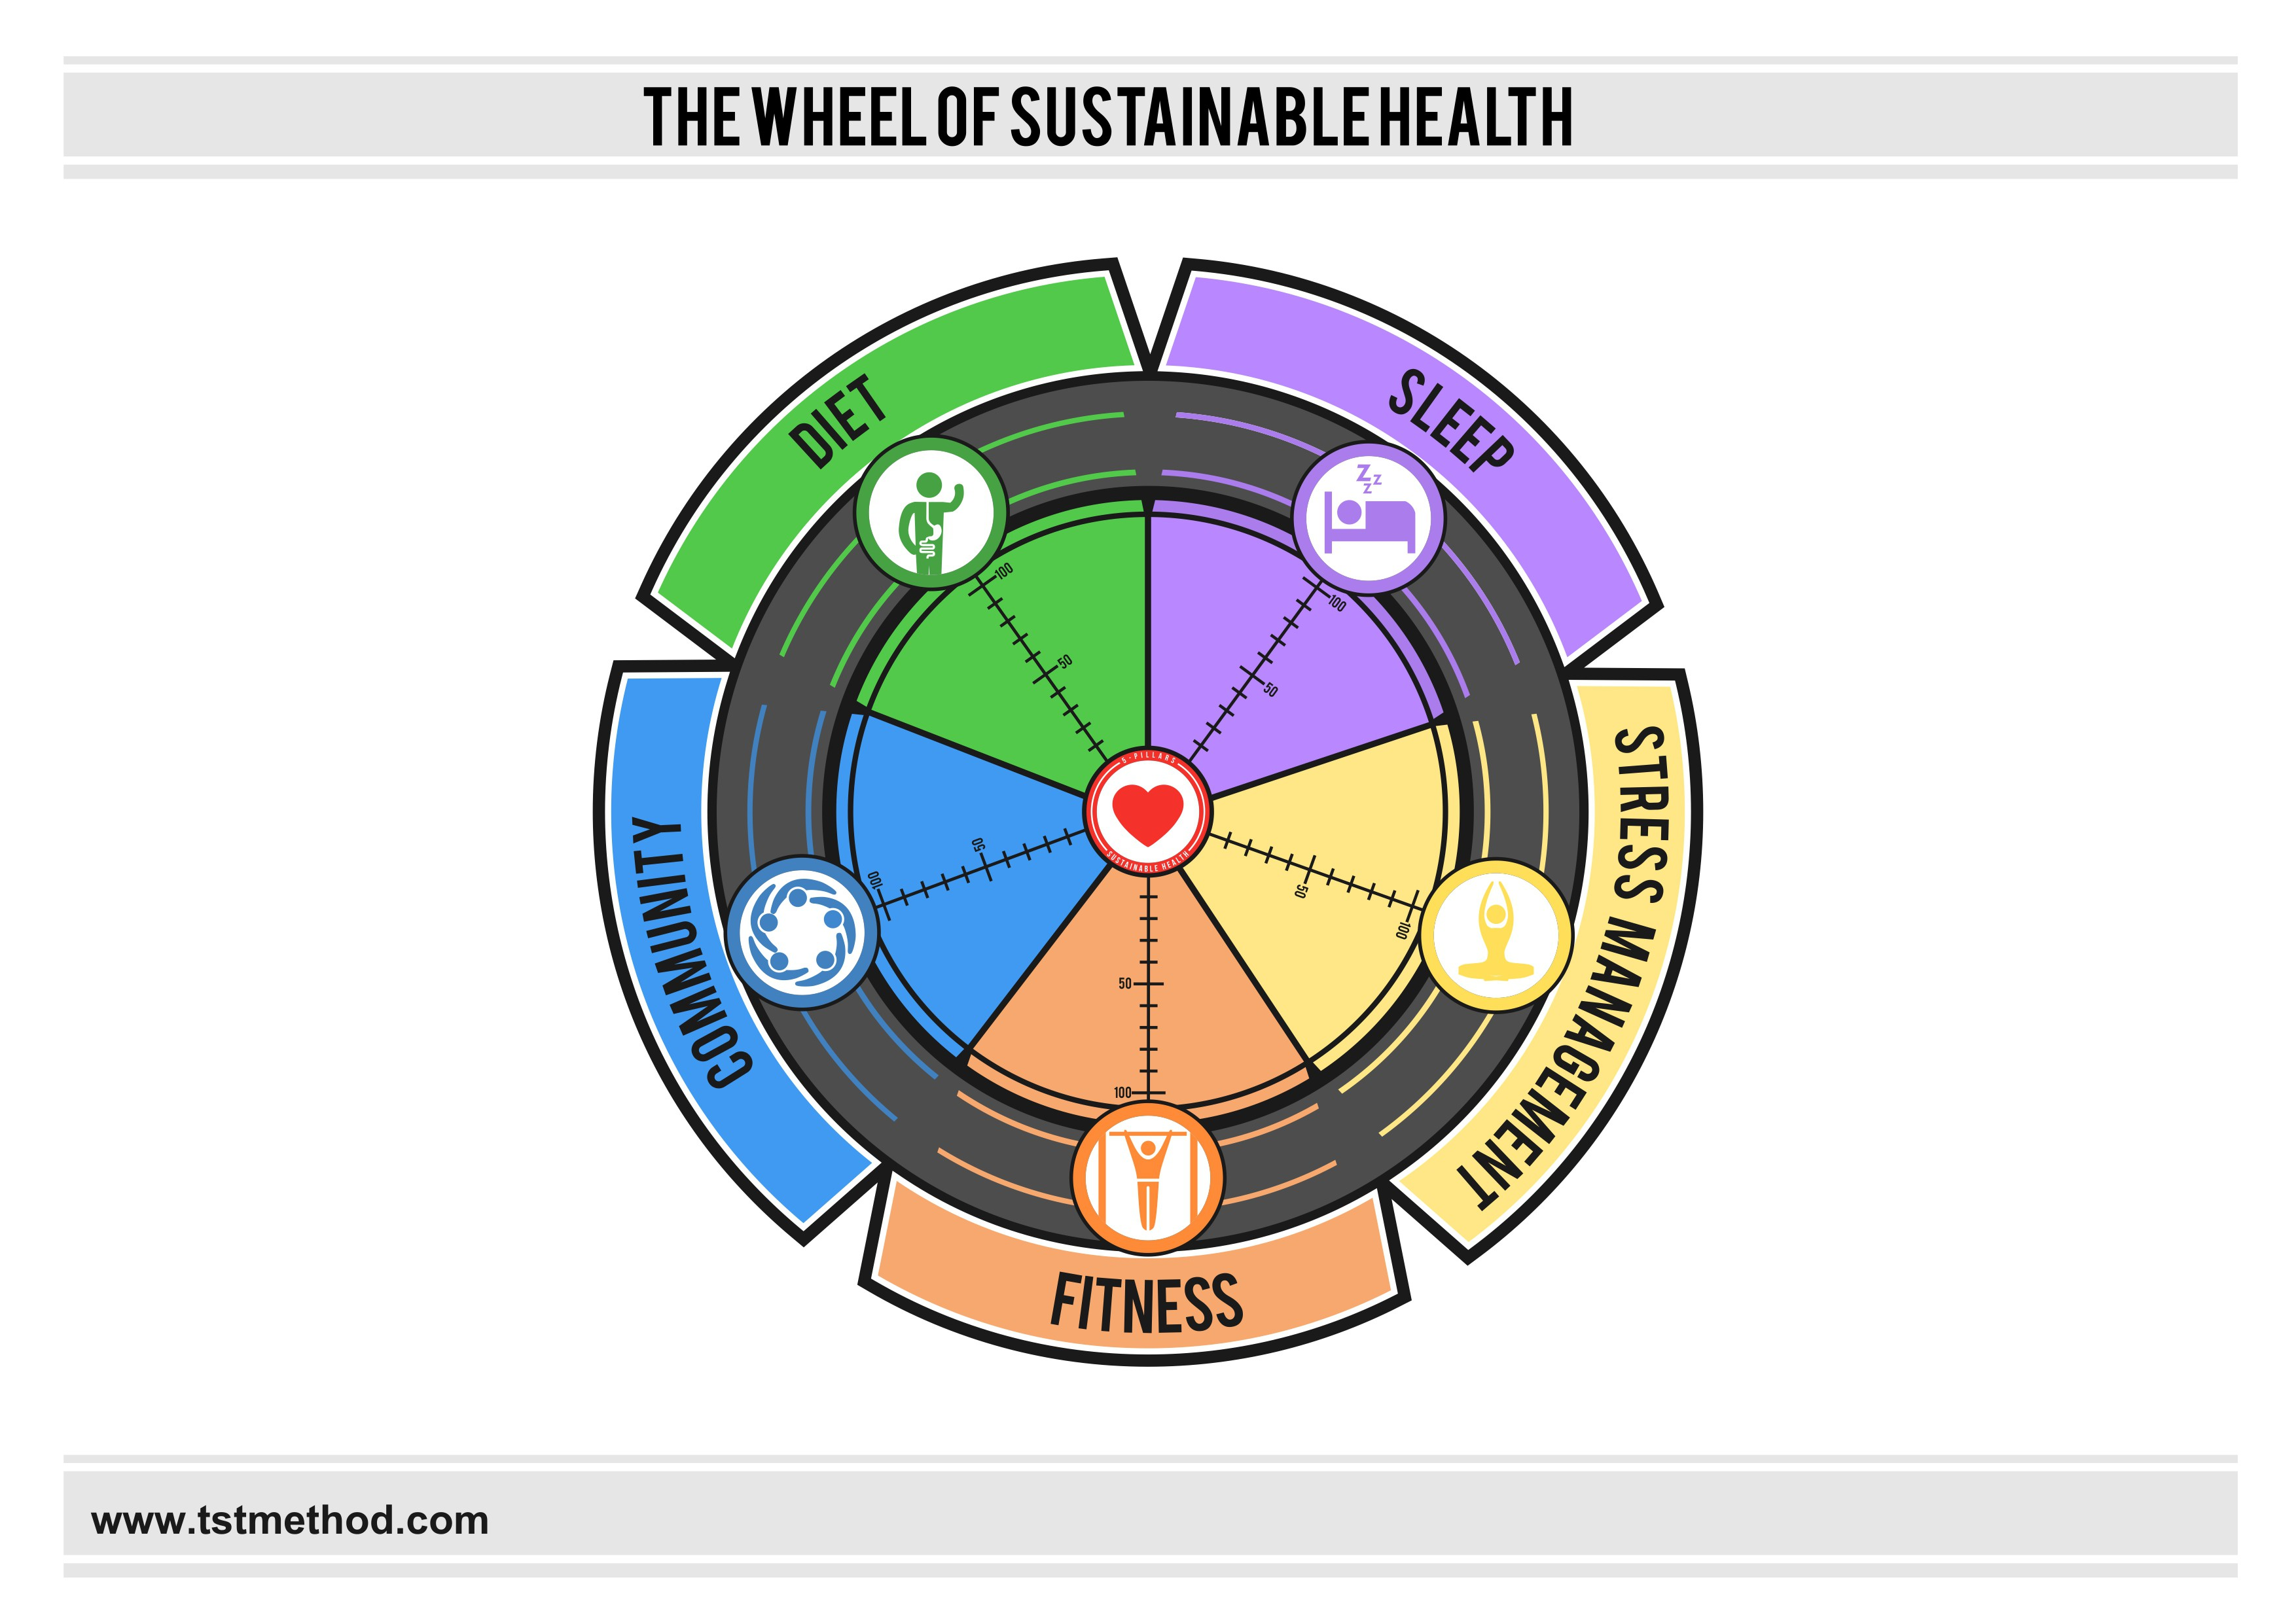 The Wheel of Sustainable Health